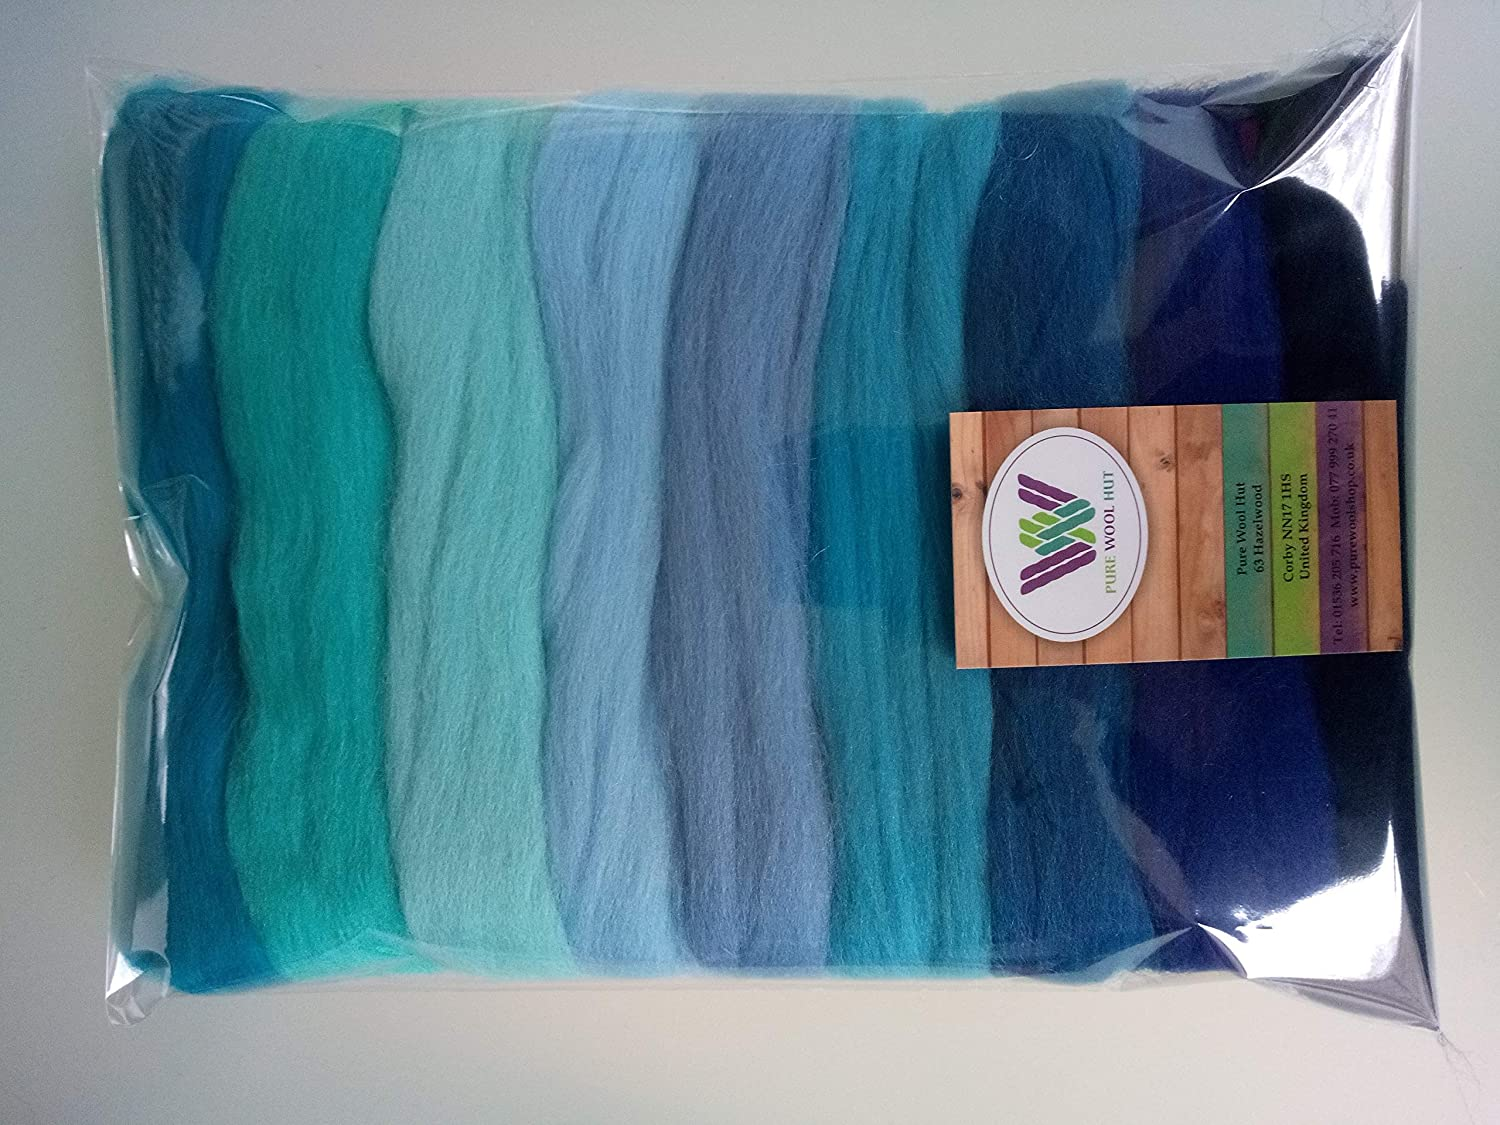 Blue Set* Pure Merino Wool Tops for Felting Packs of Set 30, 60 and 90 Grams (90g) Pure Wool Hut